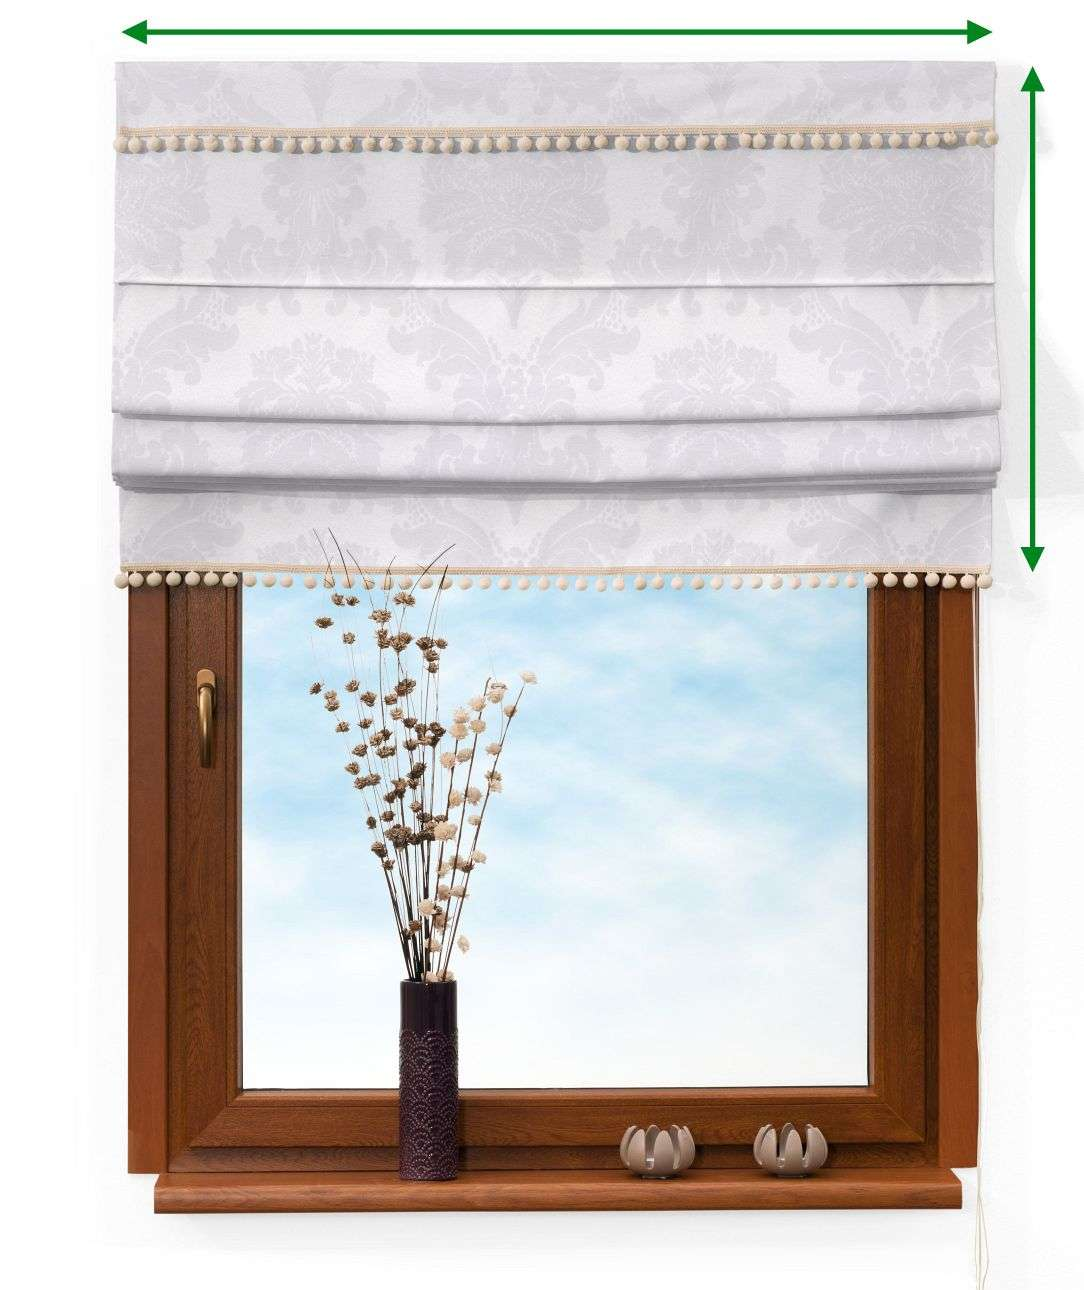 Padva blind with pompoms in collection Damasco, fabric: 613-00